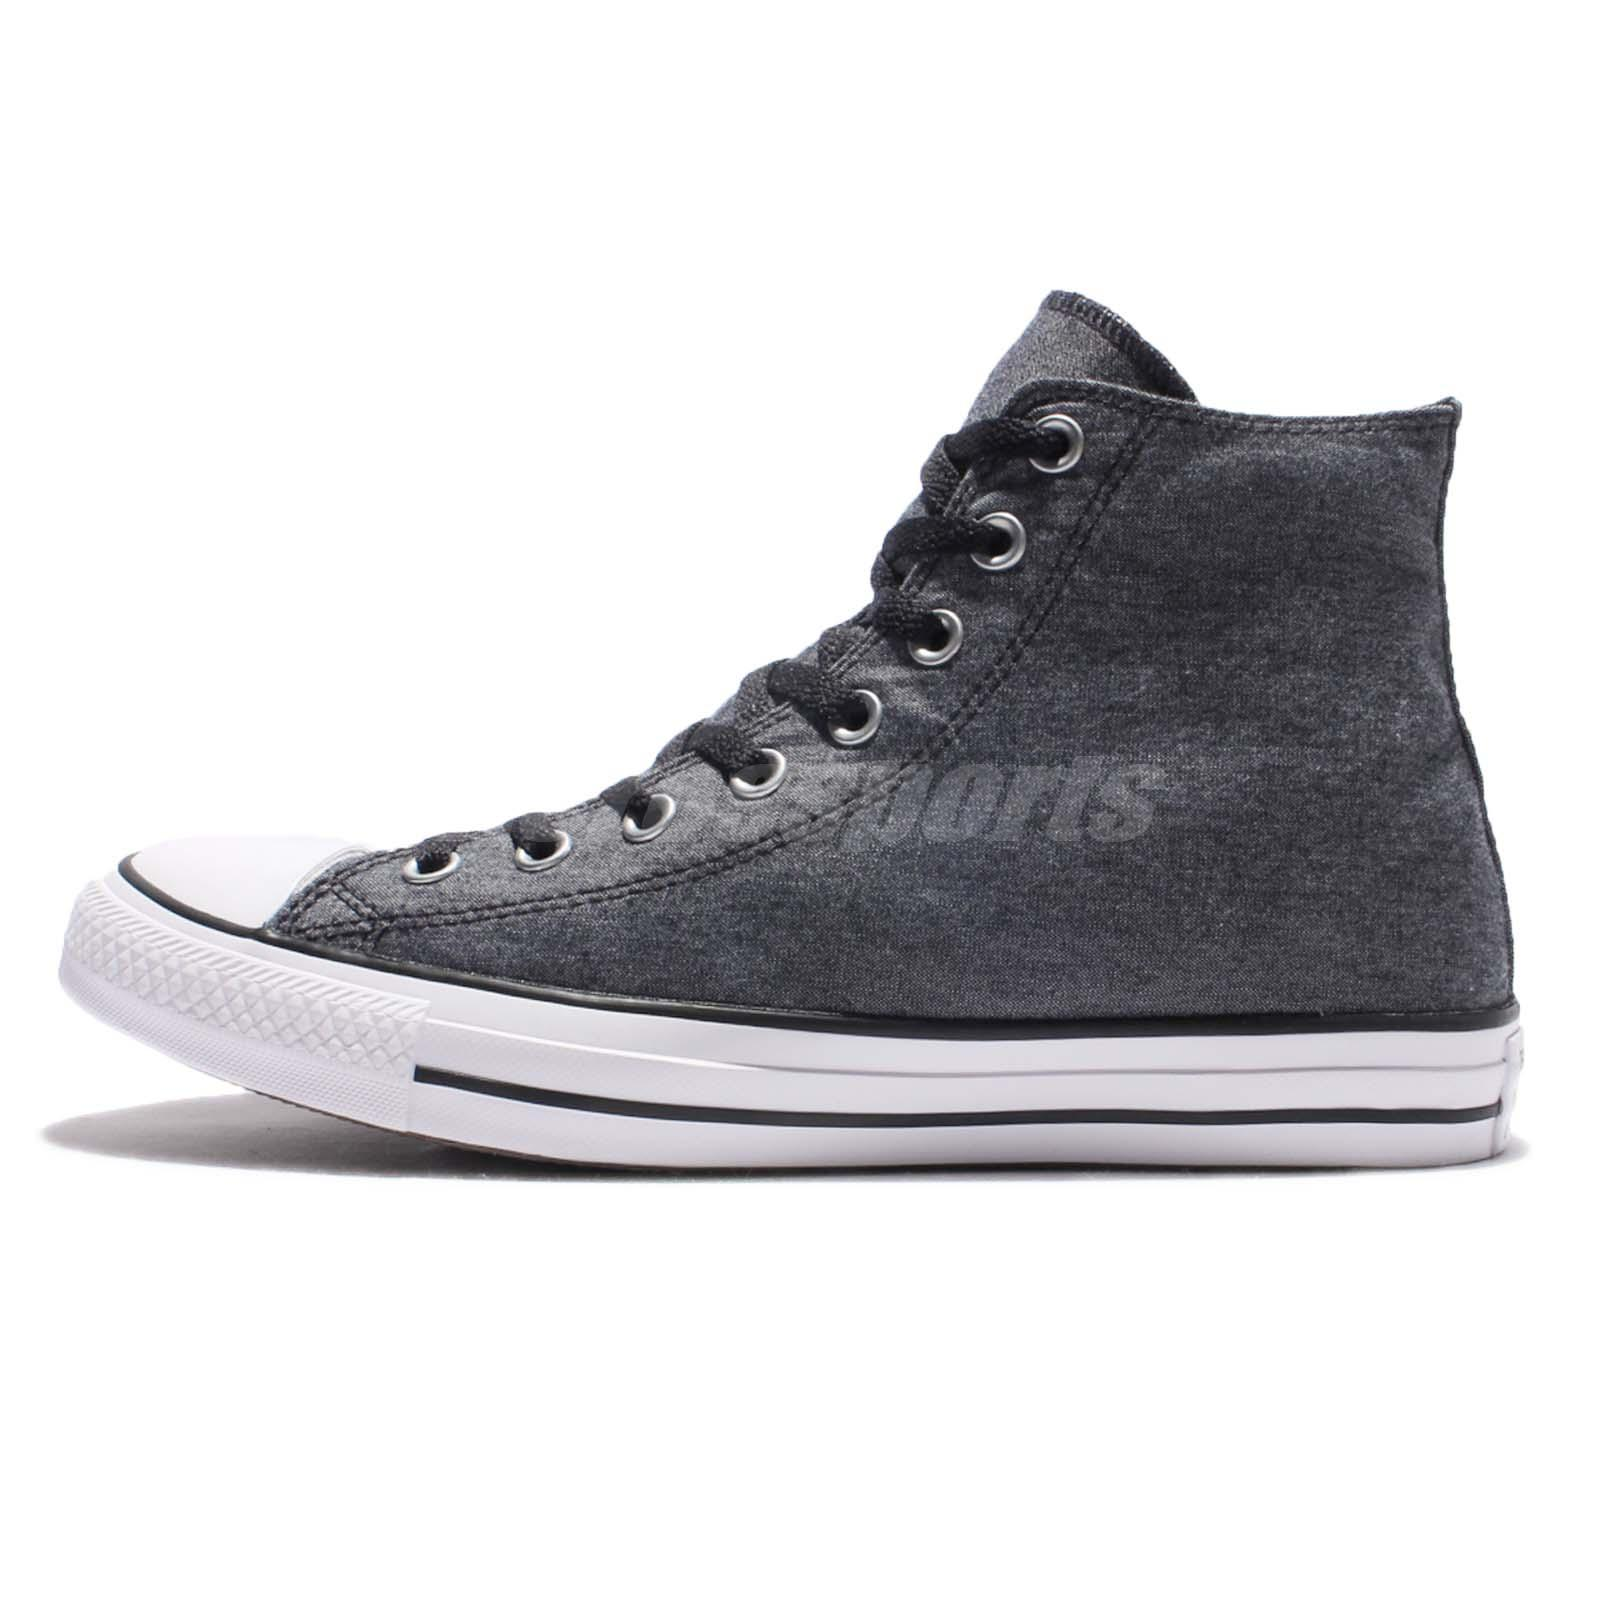 Shop Converse Shoes, Shirts, Backpacks and Exclusives at Journeys, your Converse store. Choose from many styles for Men, Women and Kids including the Converse Chuck Taylors All Star Lo, and All Star Hi Top. Plus, Free Shipping and In-Store Returns on Orders Over $ Shop Converse Shoes .